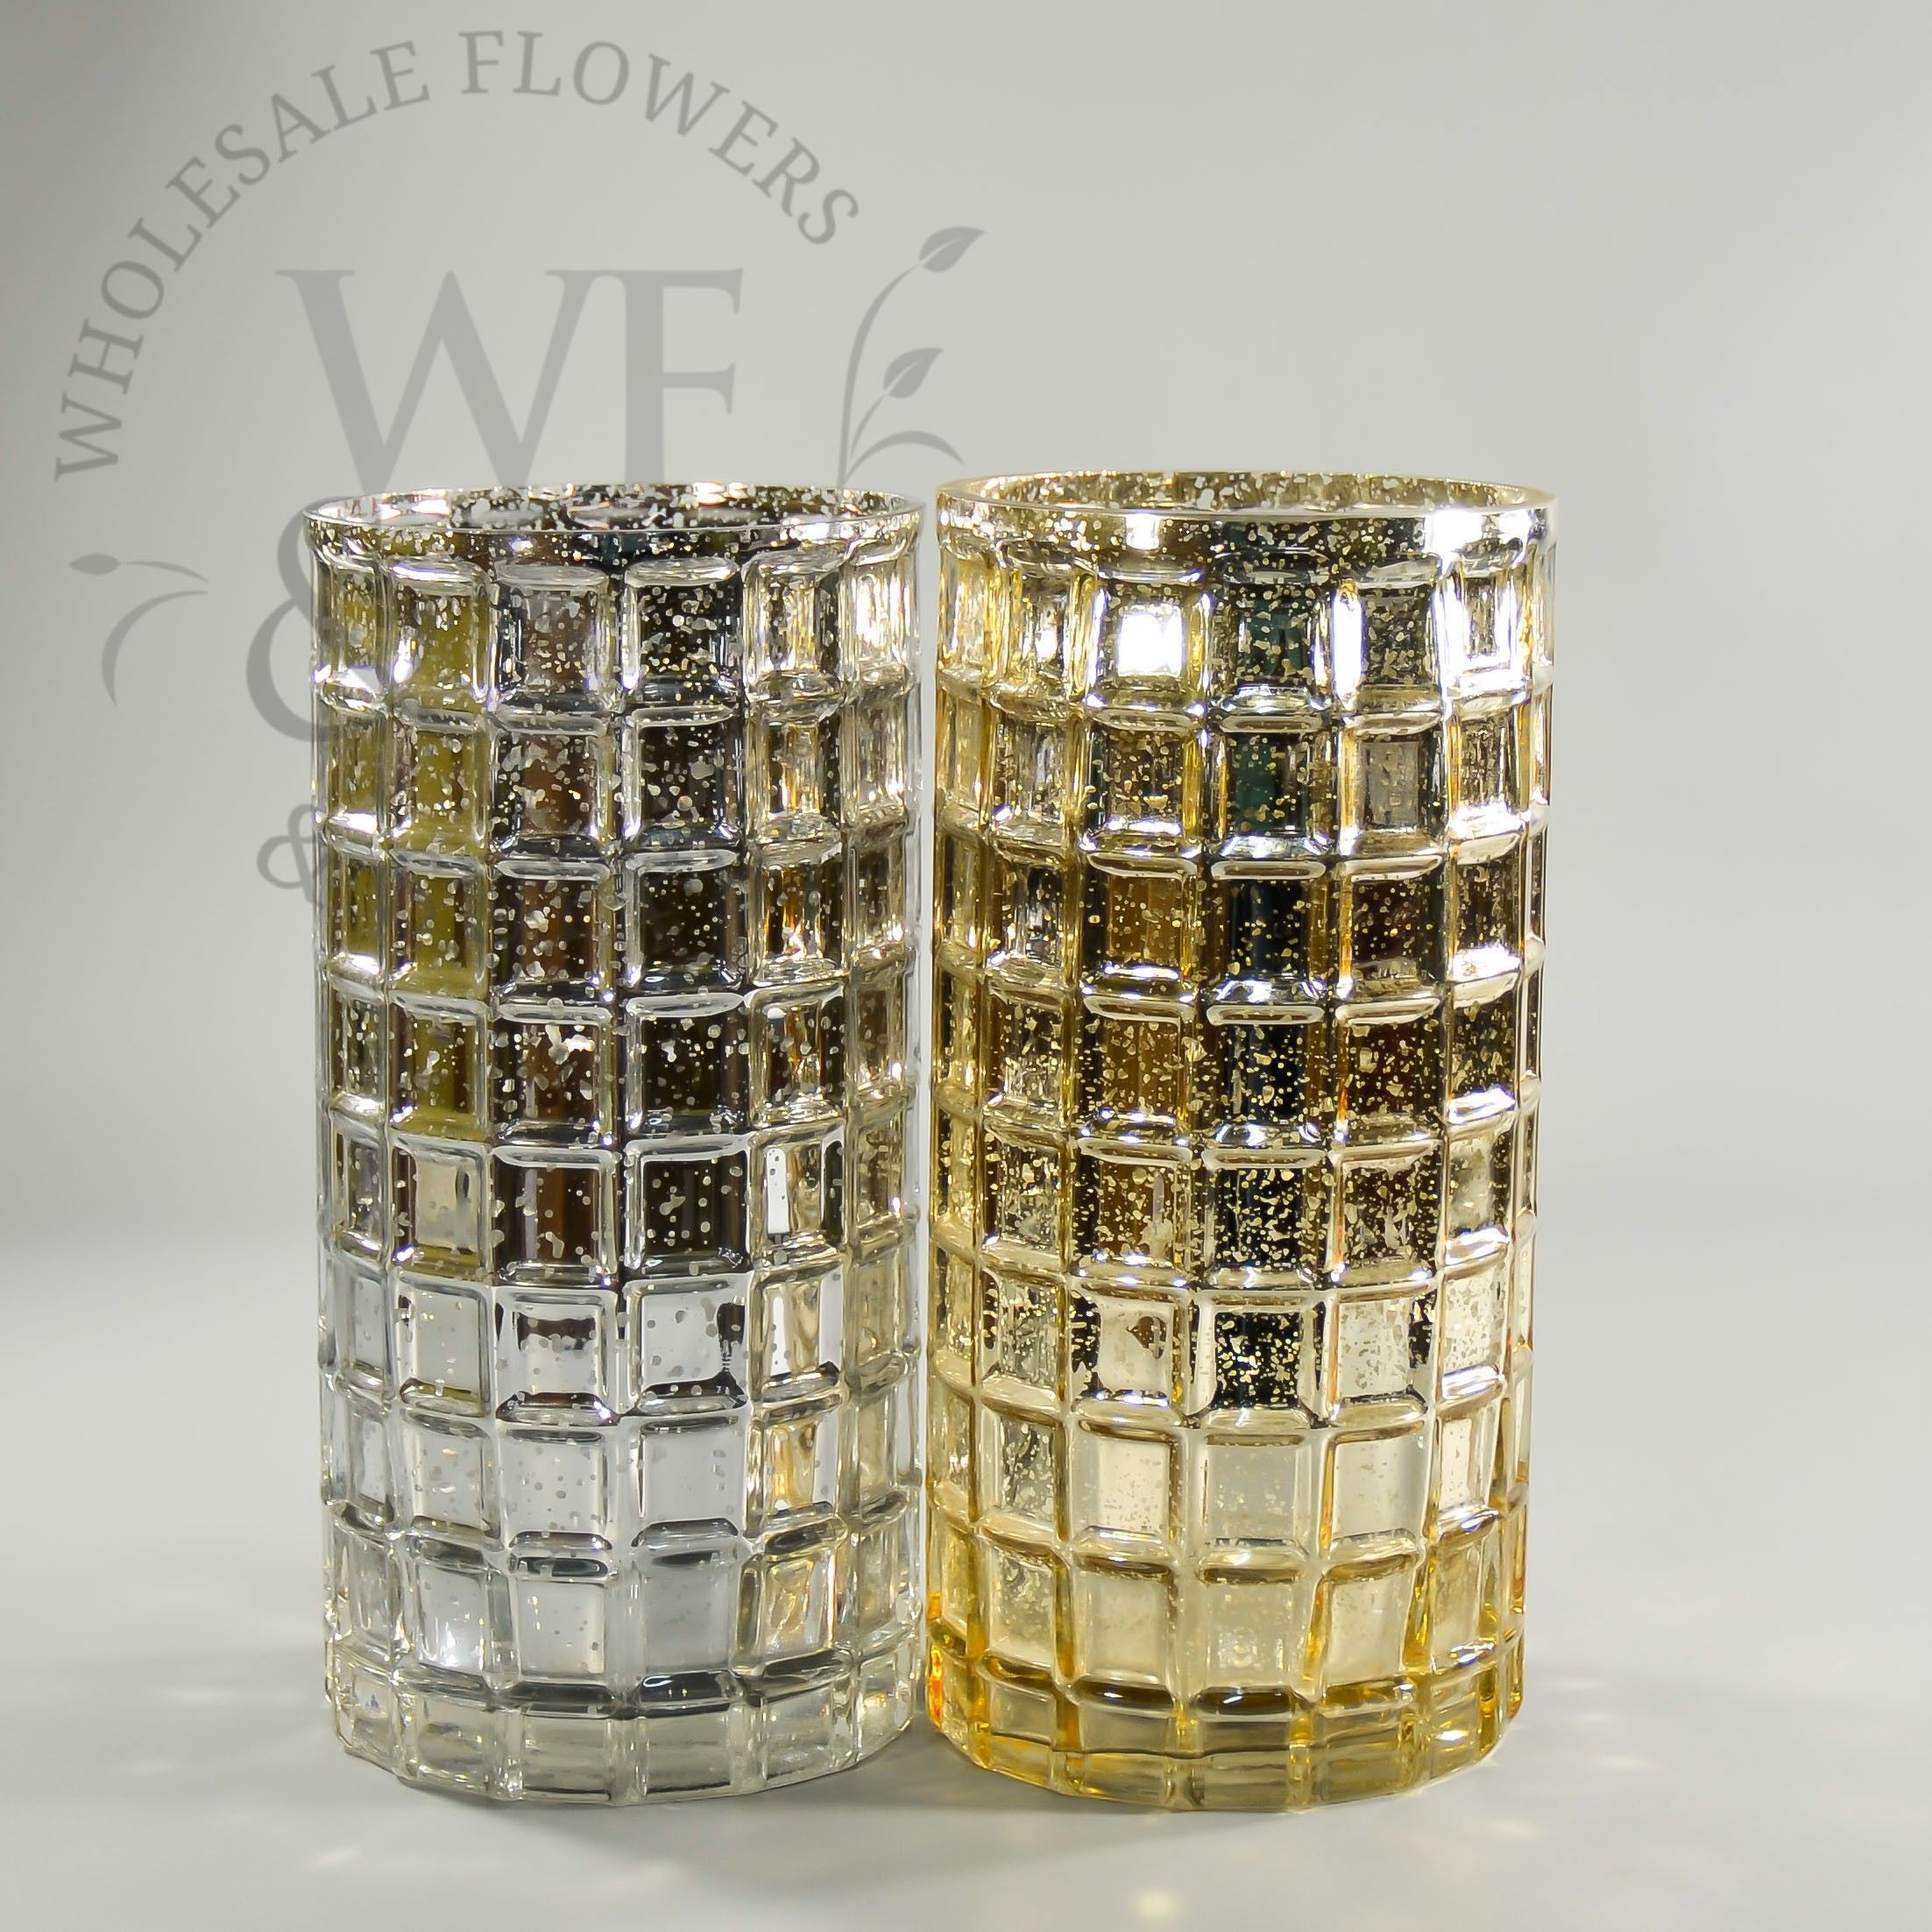 20 cylinder vase wholesale of photos of gold cylinder vases vases artificial plants collection throughout gold cylinder vases collection silver and gold mercury glass mosaic cylinder vase 10x5in of photos of